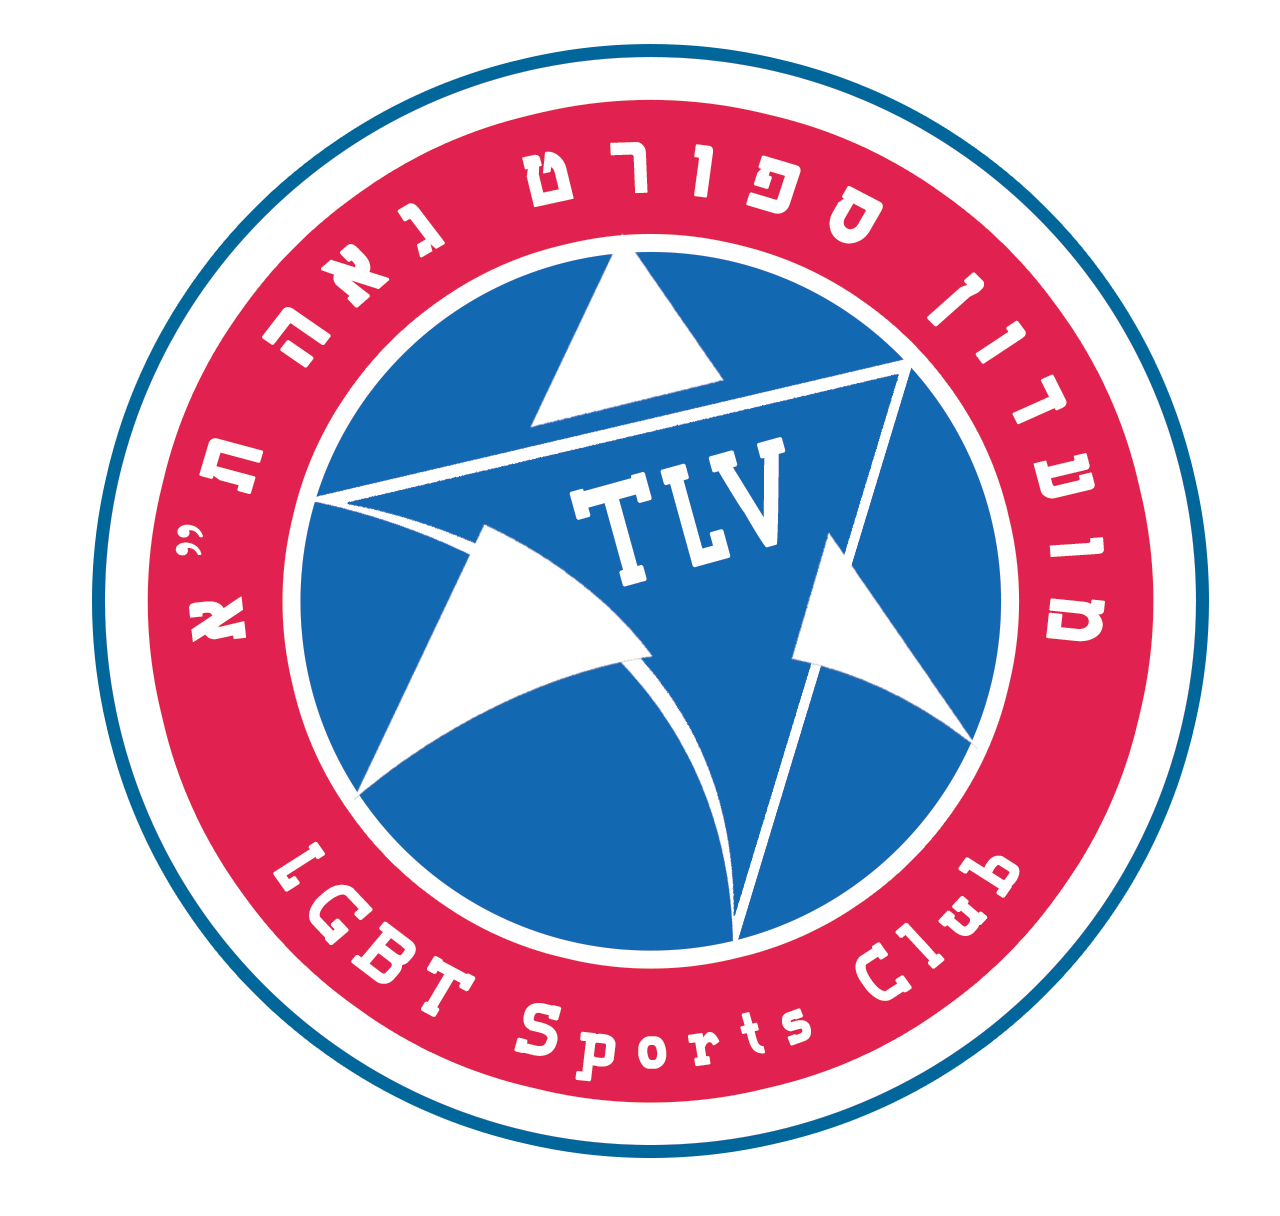 https://ngba.org/wp-content/uploads/2018/07/LOGO_-lgbt-sport-club-tlv.png